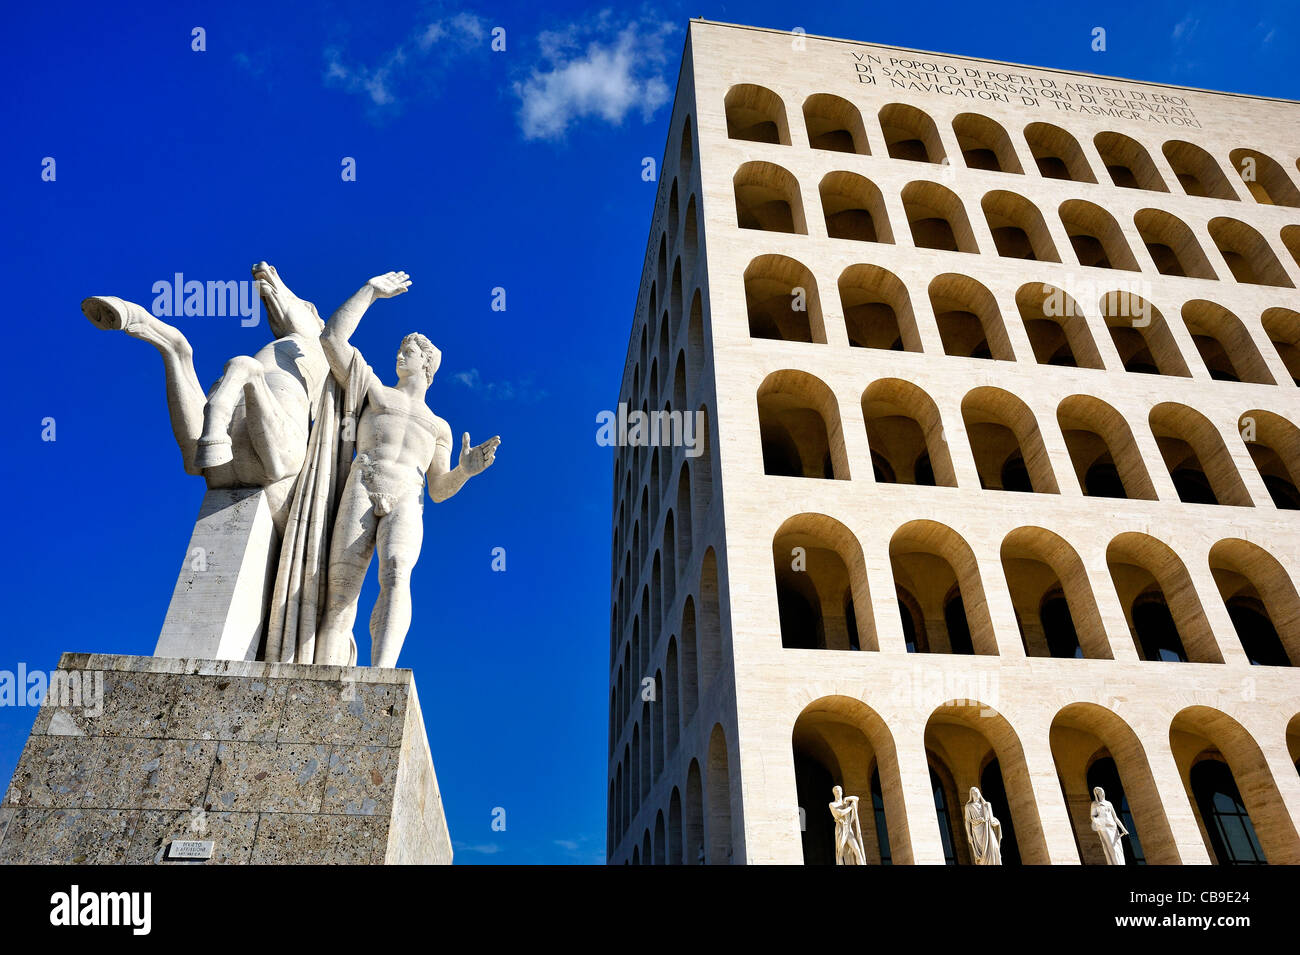 Labor ministry, EUR district, Rome, italy. - Stock Image